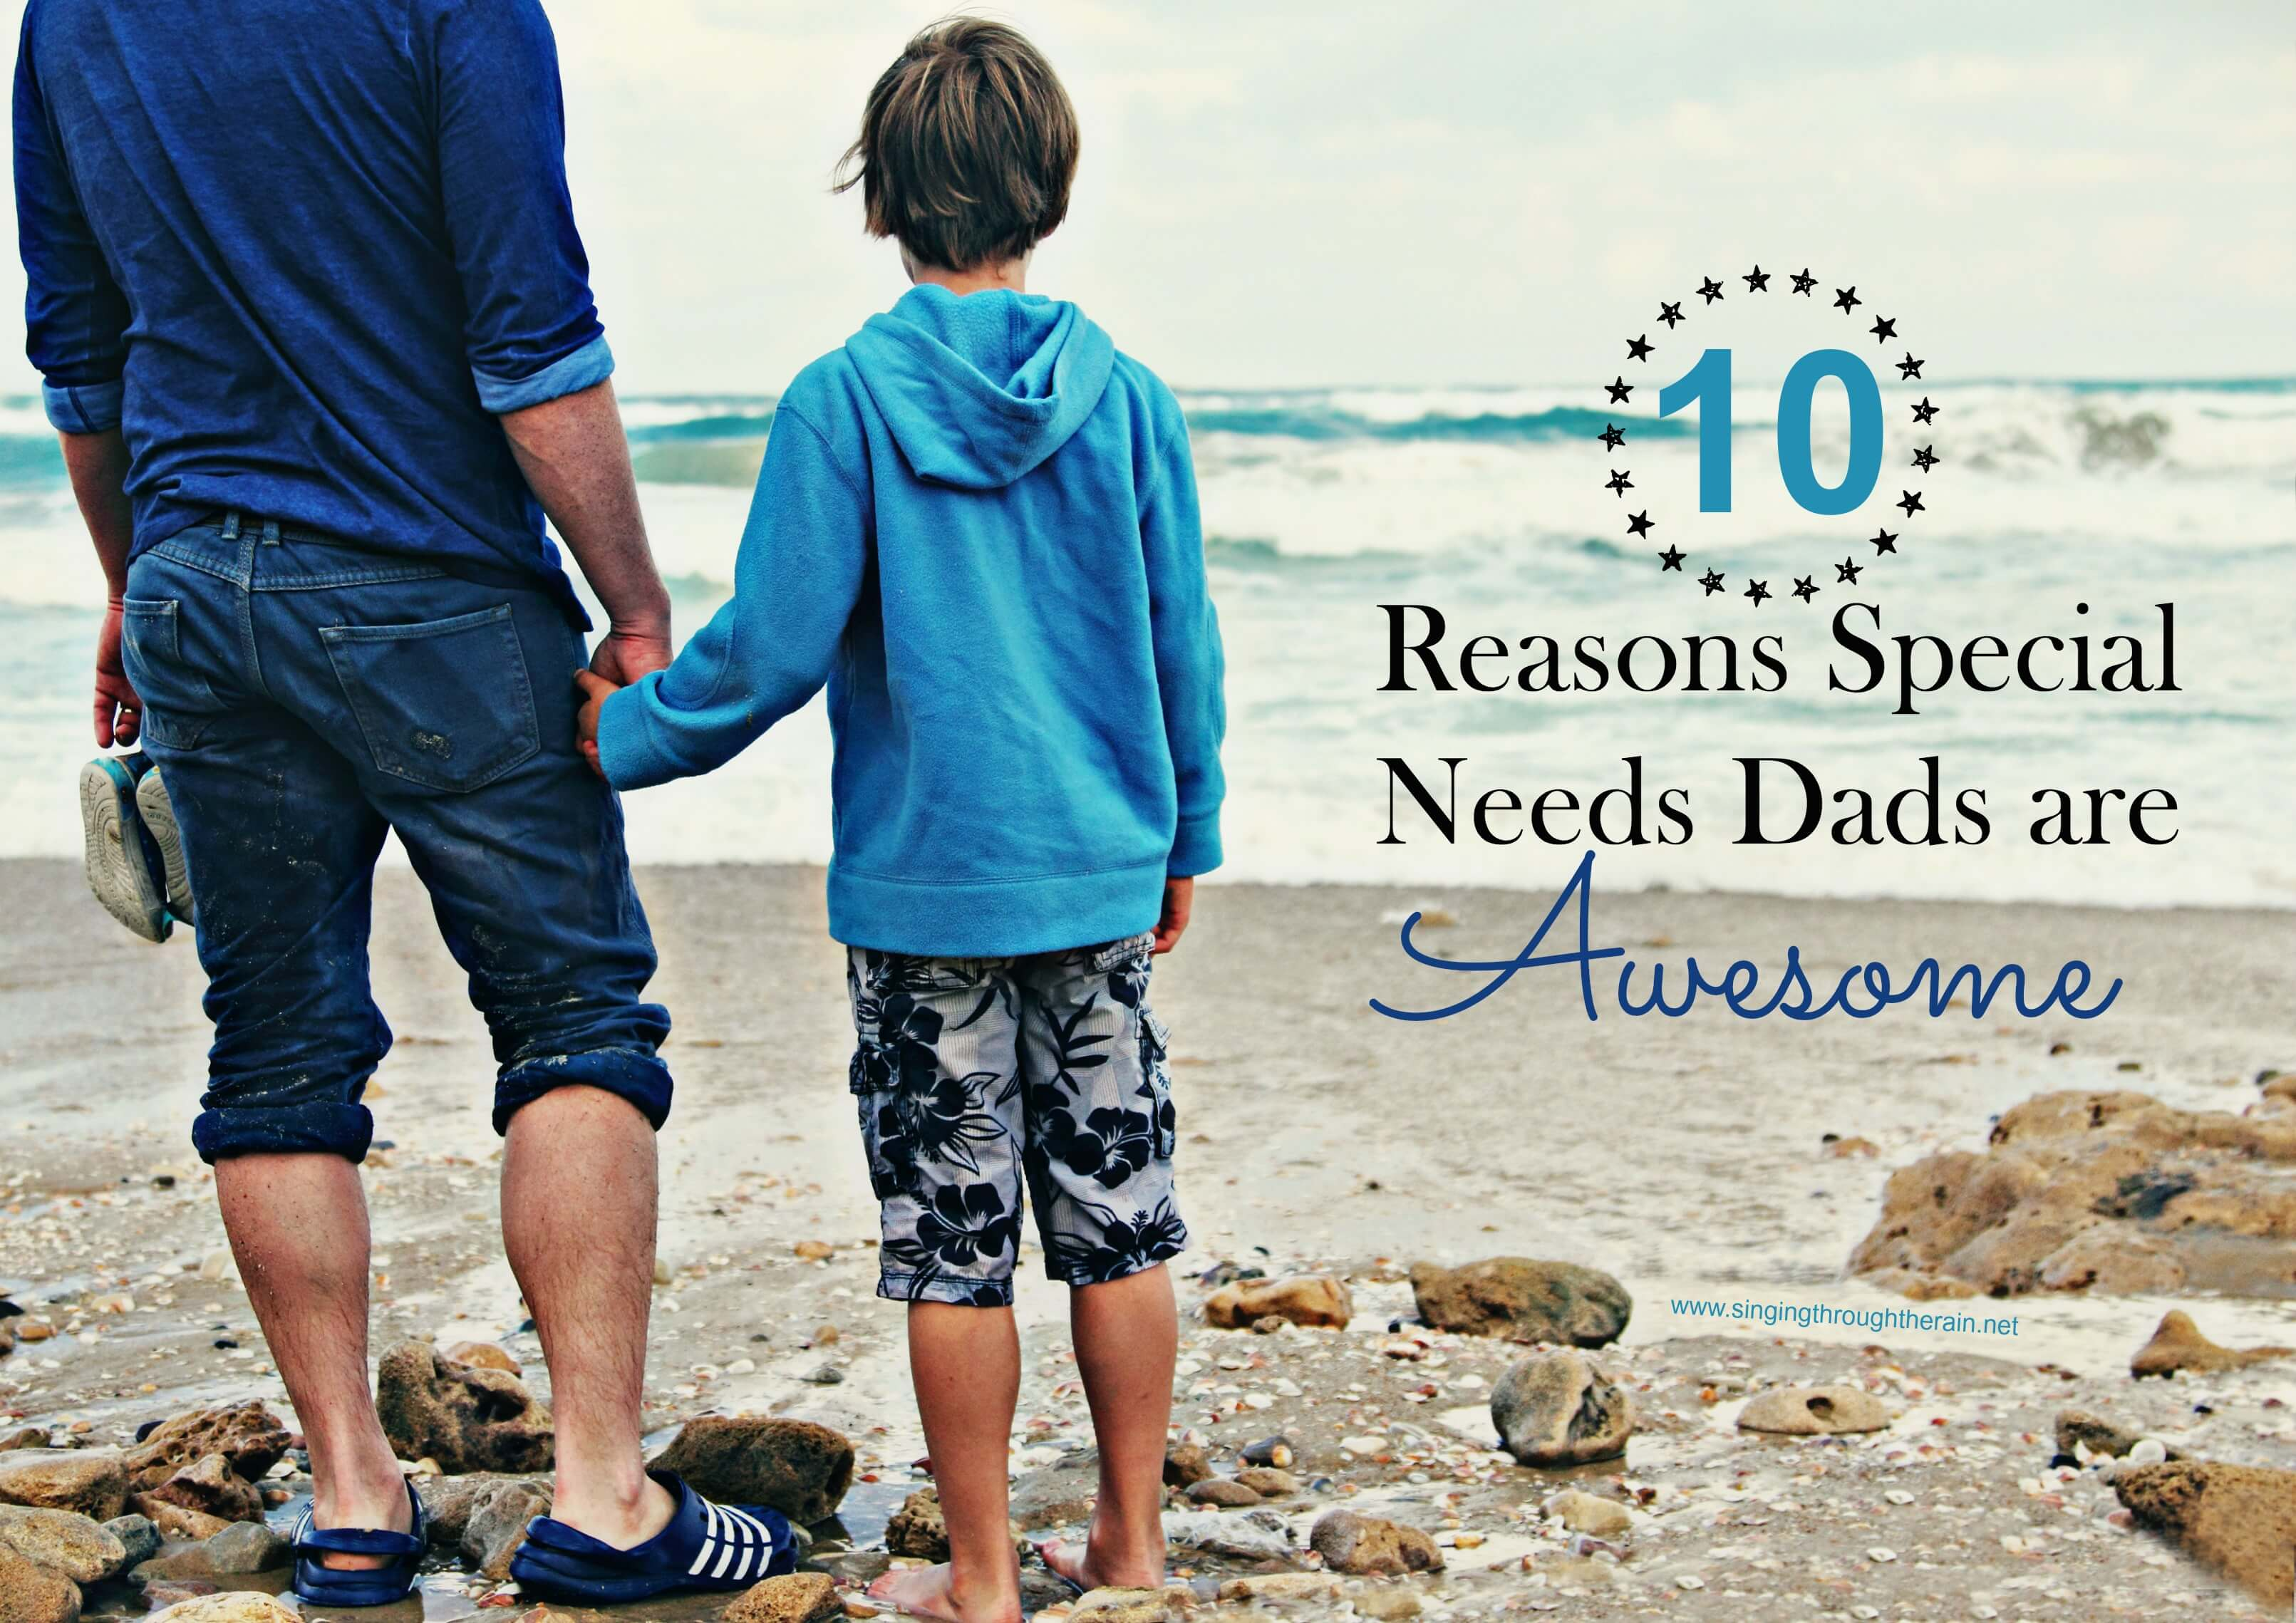 10 reasons special needs dads are awesome